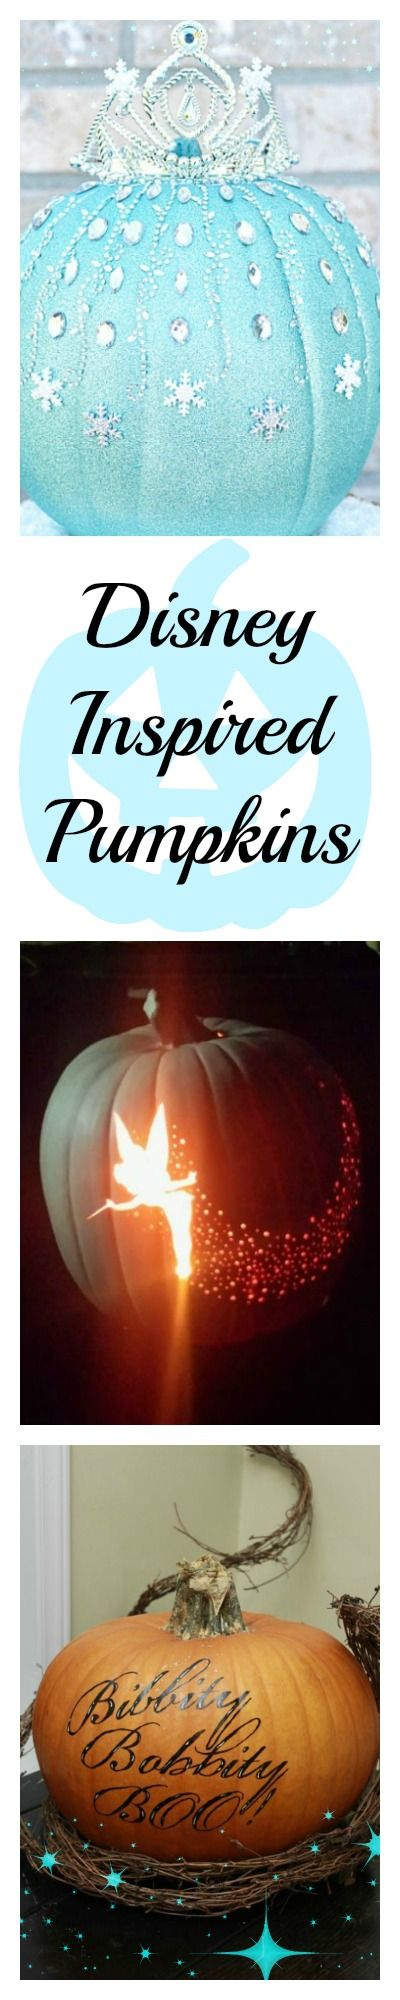 And fashion magic halloween pumpkins carving and decorating ideas - 270 Best Halloween Pumpkin Ideas Images On Pinterest Halloween Pumpkins Halloween Crafts And Happy Halloween